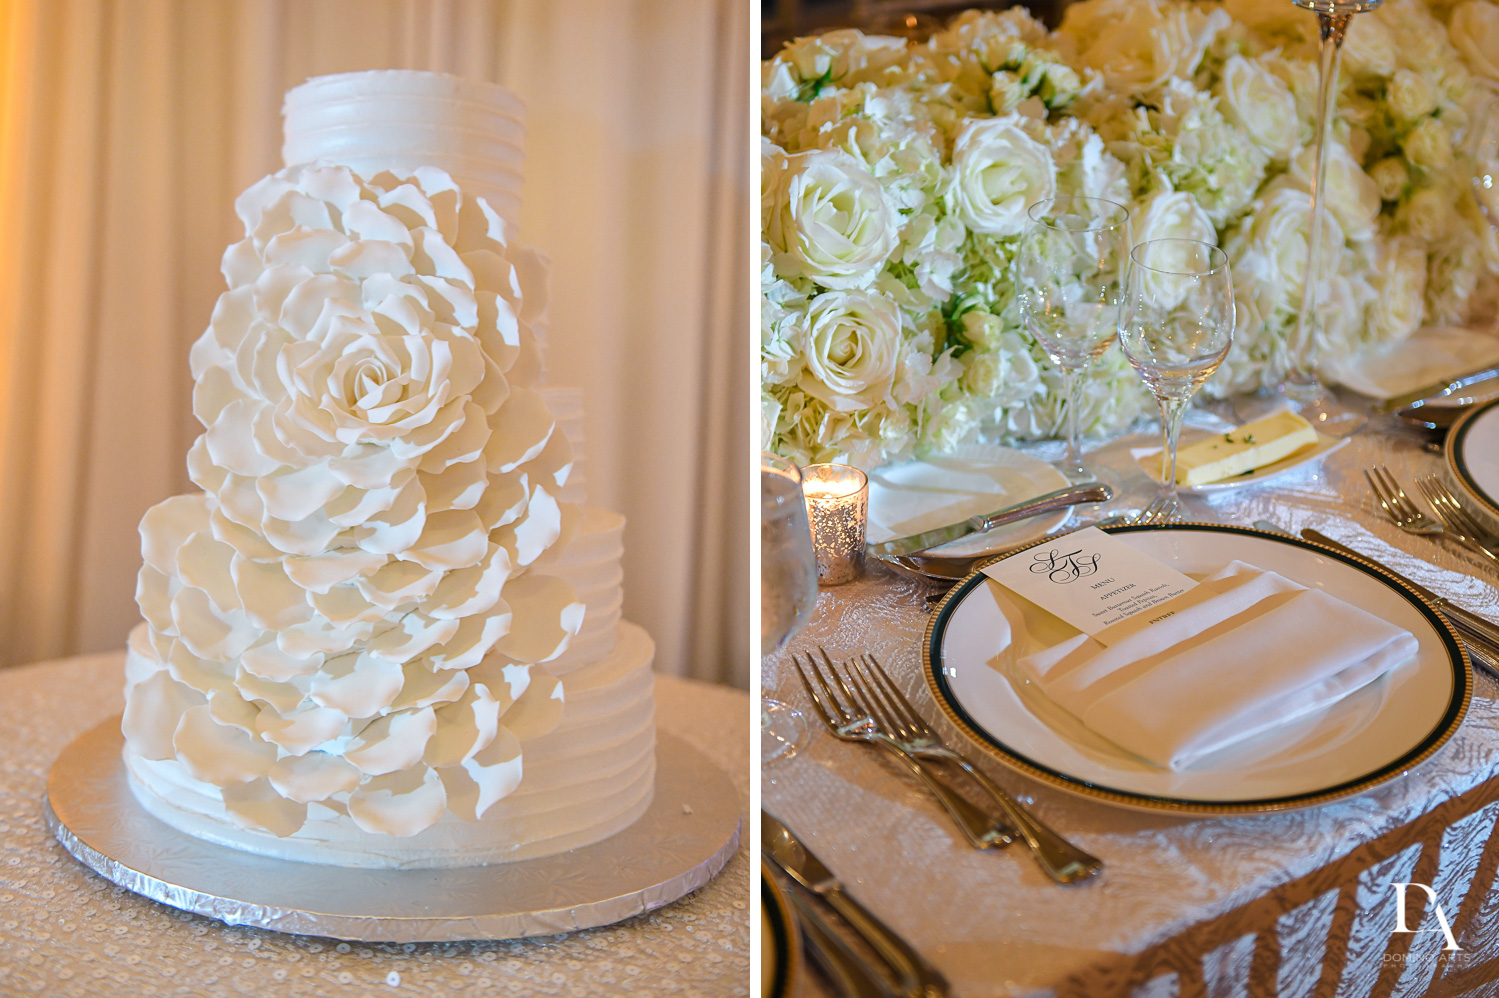 wedding cake and details at A Ritz Carlton Wedding in Key Biscayne by Domino Arts Photography